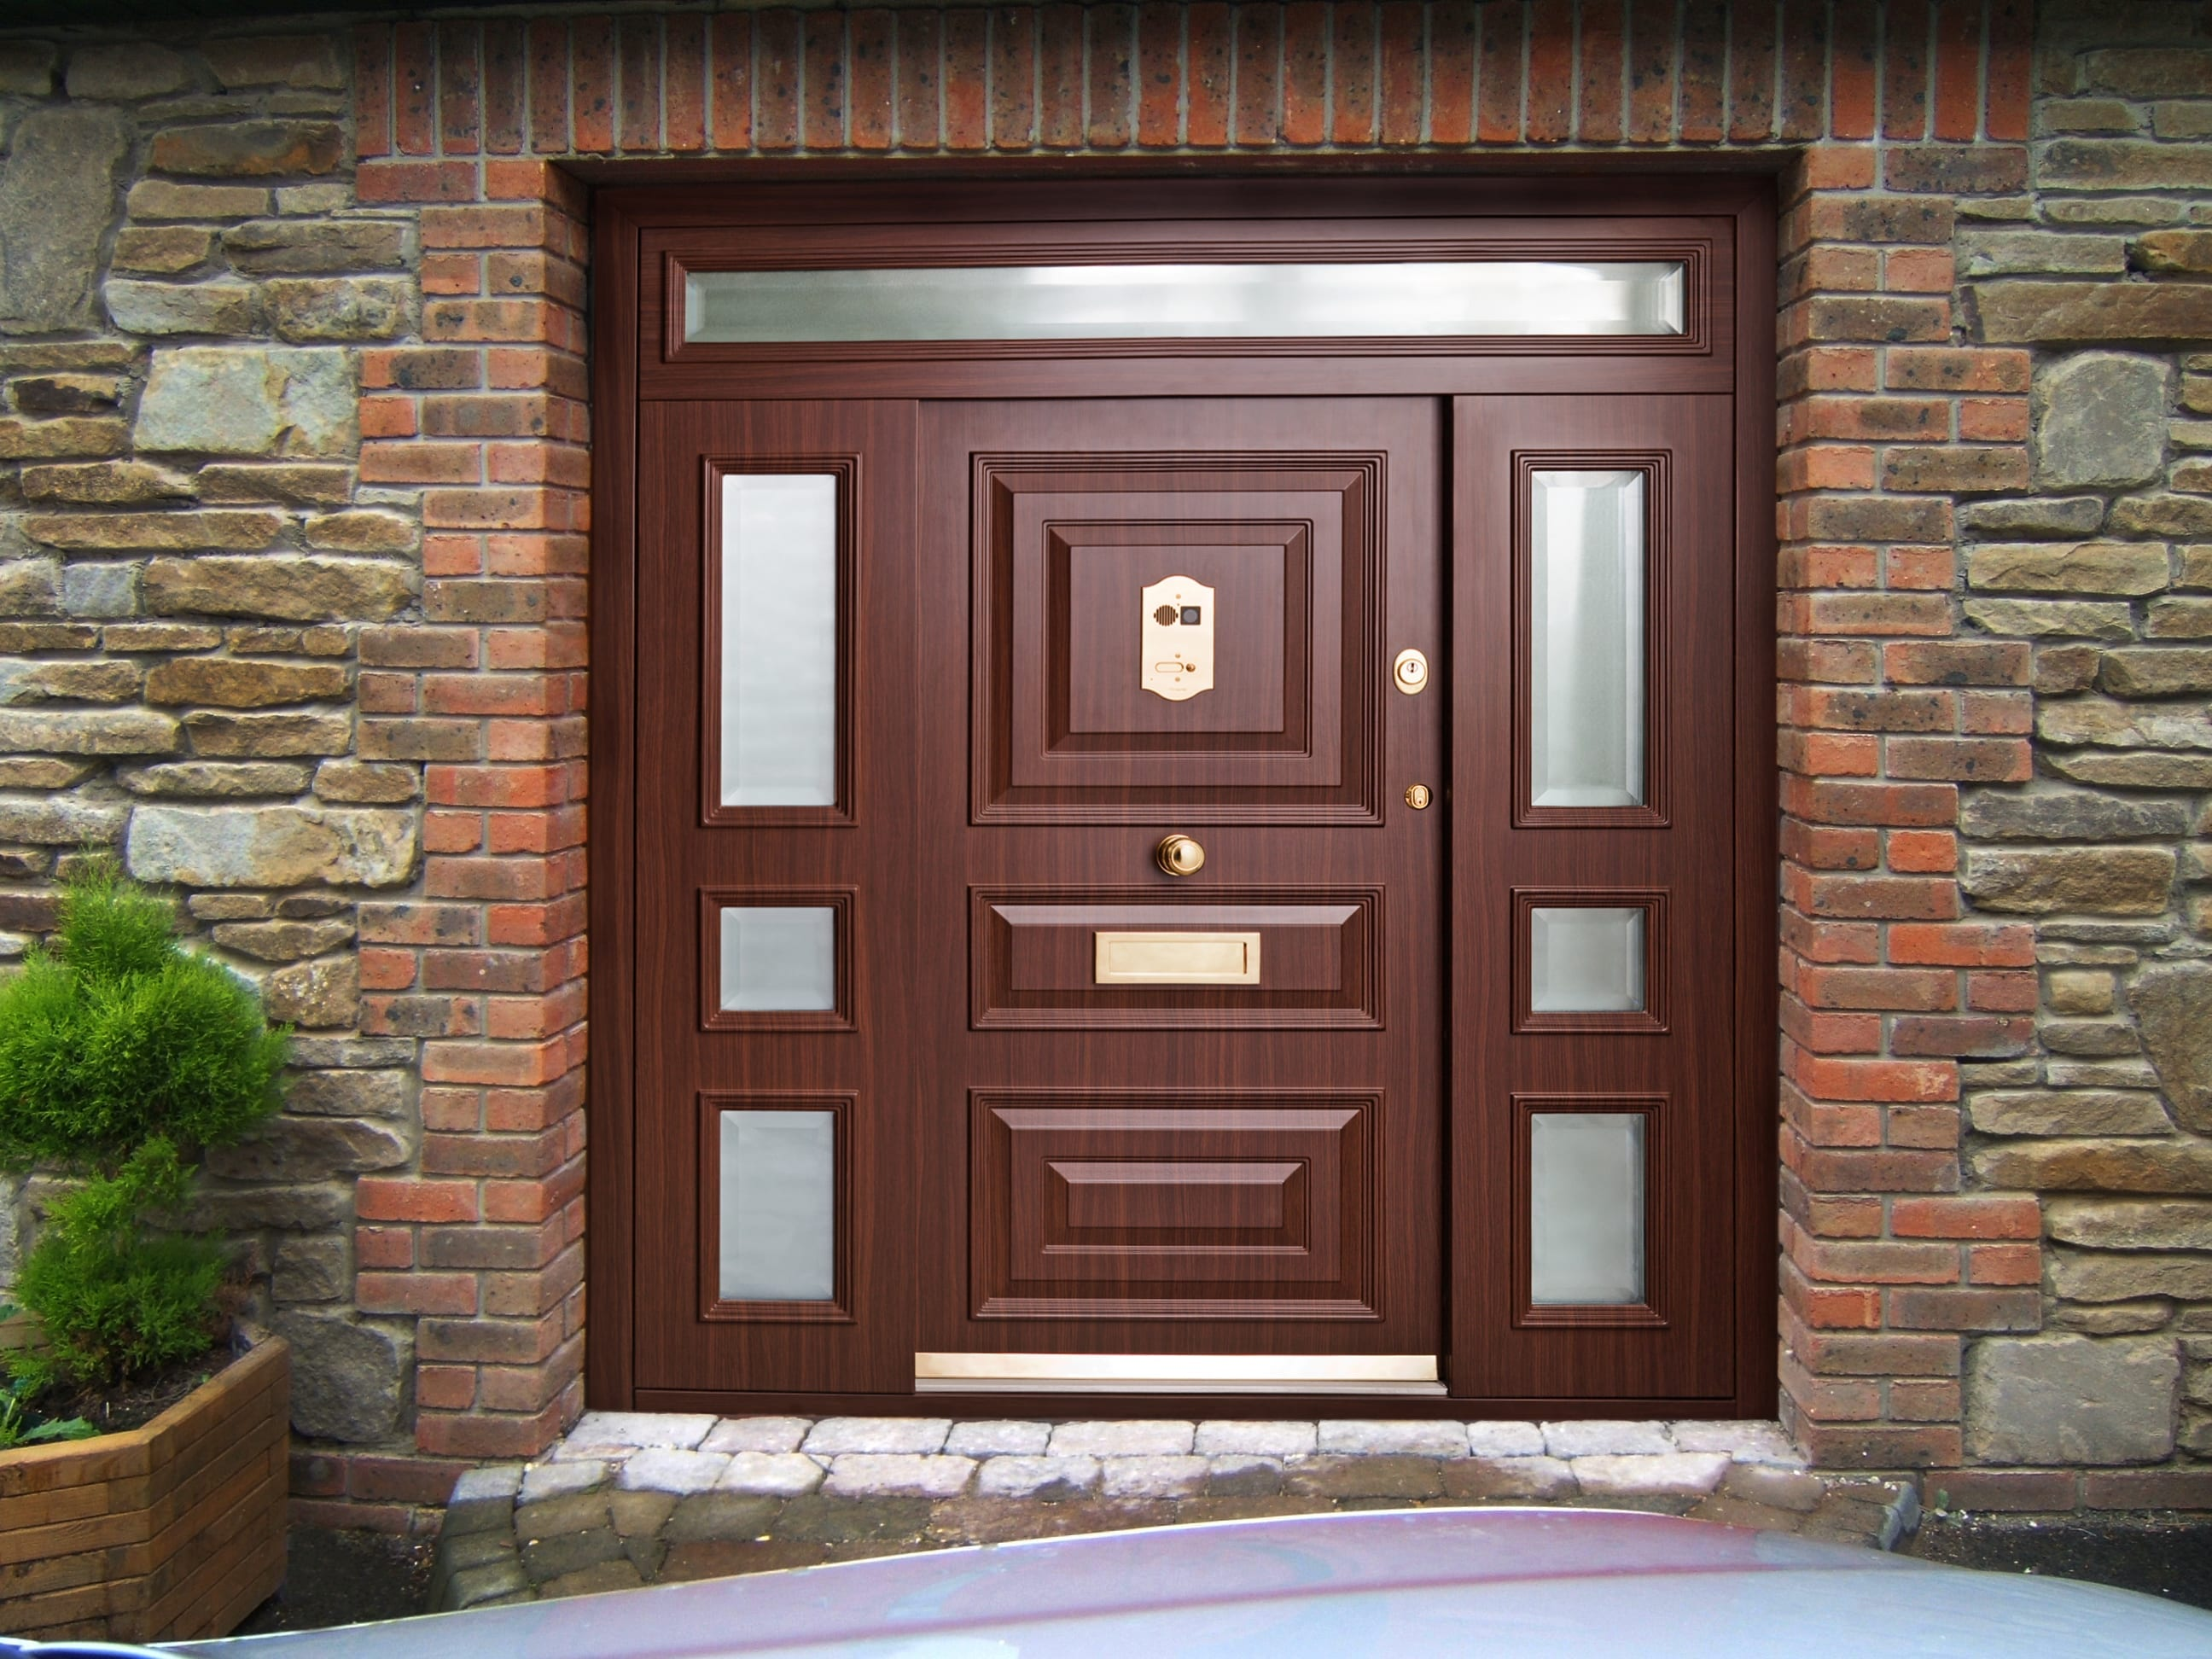 traditional custom security door with wood paneling and glass sidelight windows